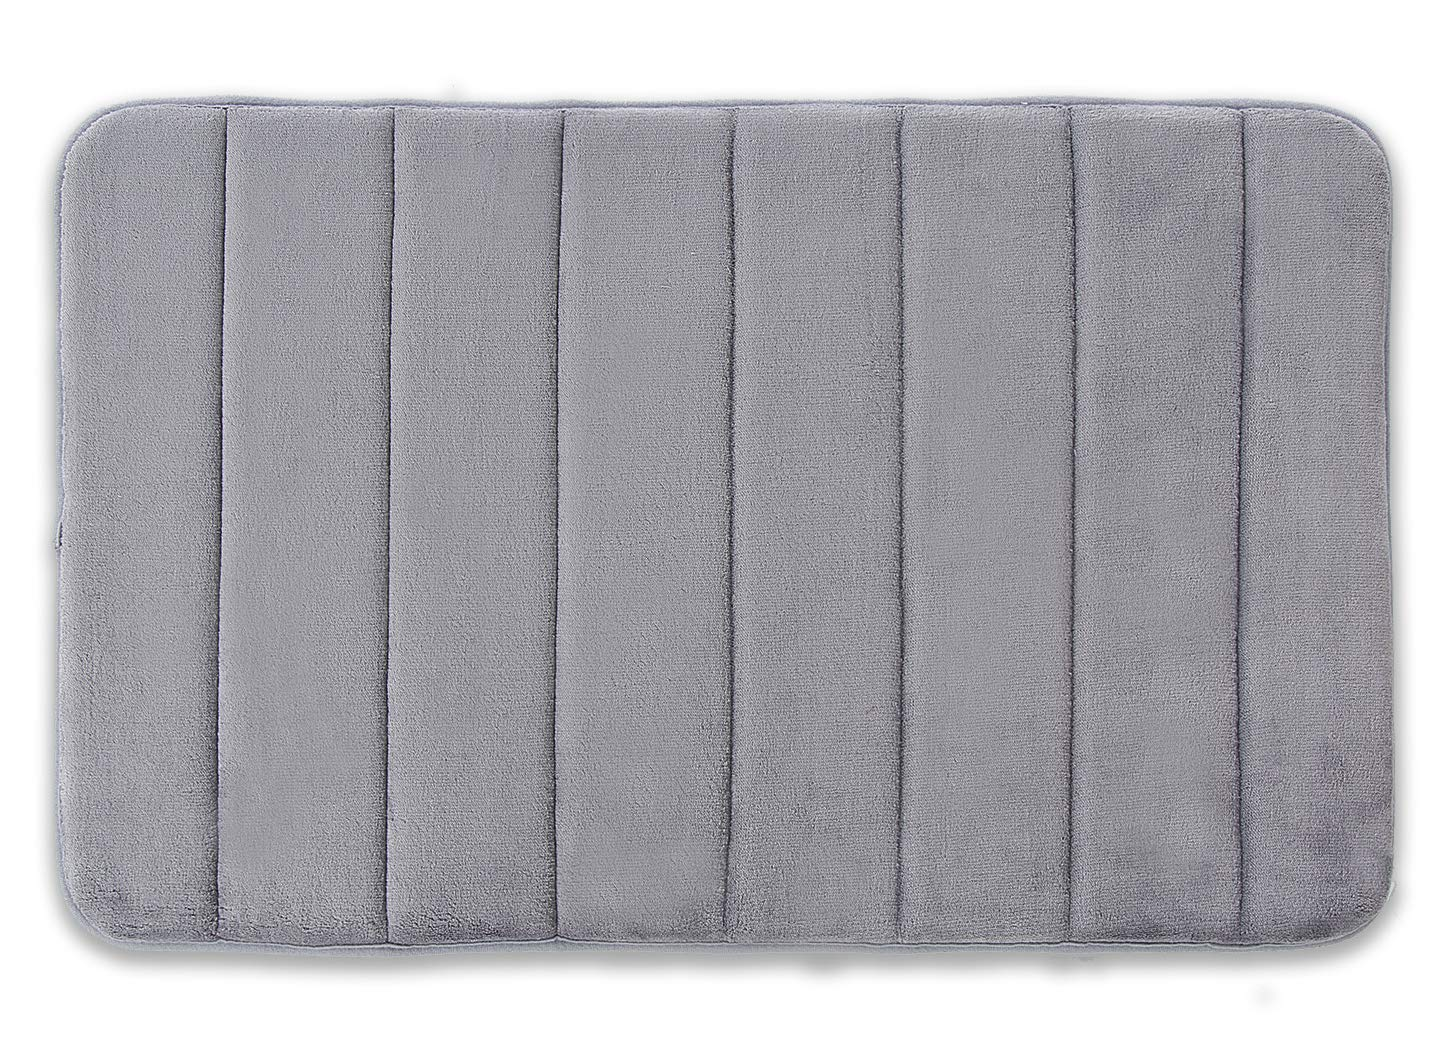 Yimobra Memory Foam Bath Mat Large Size 31.5 by 19.8 Inch,Maximum Absorbent,Soft,Comfortable,Non-Slip,Easier to Dry for Bathroom,Gray (Presented Wall Hooks 3 Pack) by Yimobra